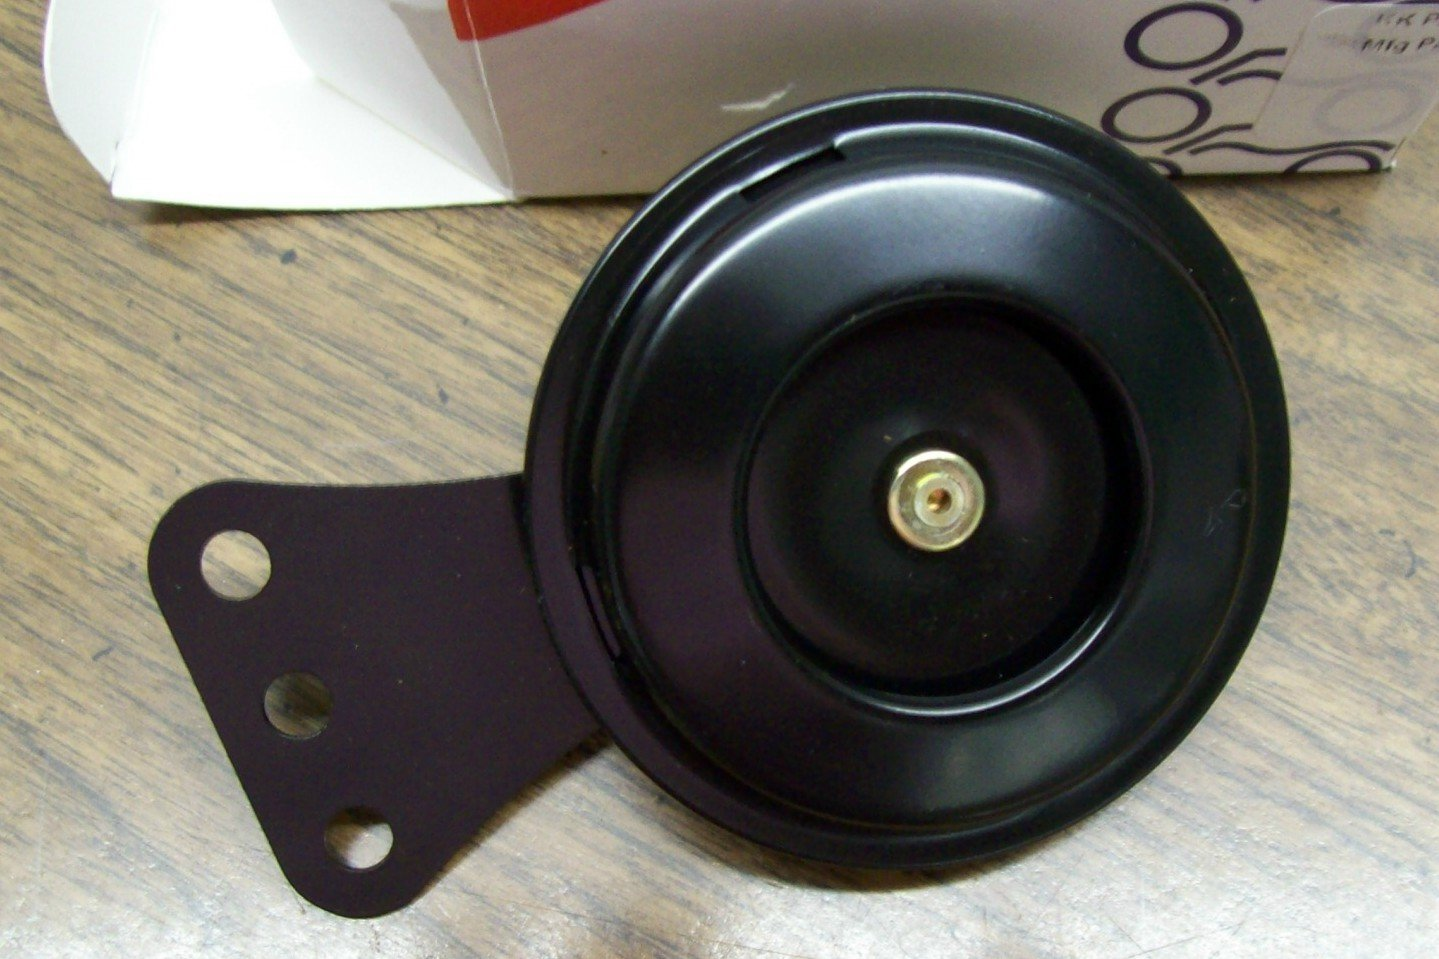 12 volt Universal Economy Horn for small Bikes 023 by K&S (Image #2)